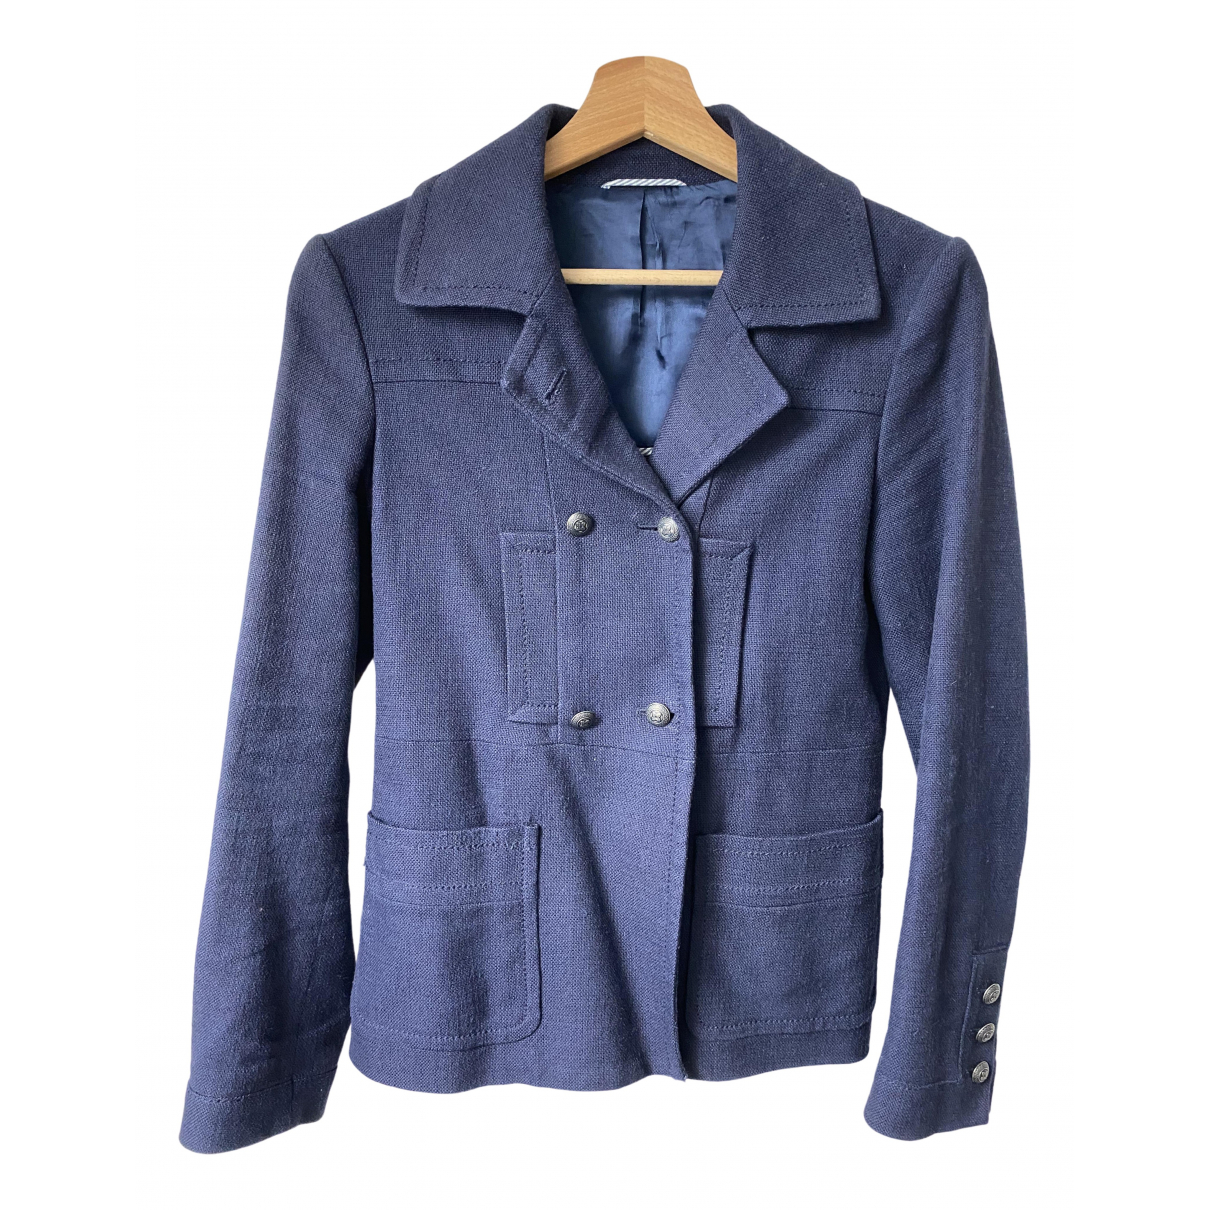 Massimo Dutti \N Navy Cotton jacket for Women 36 FR